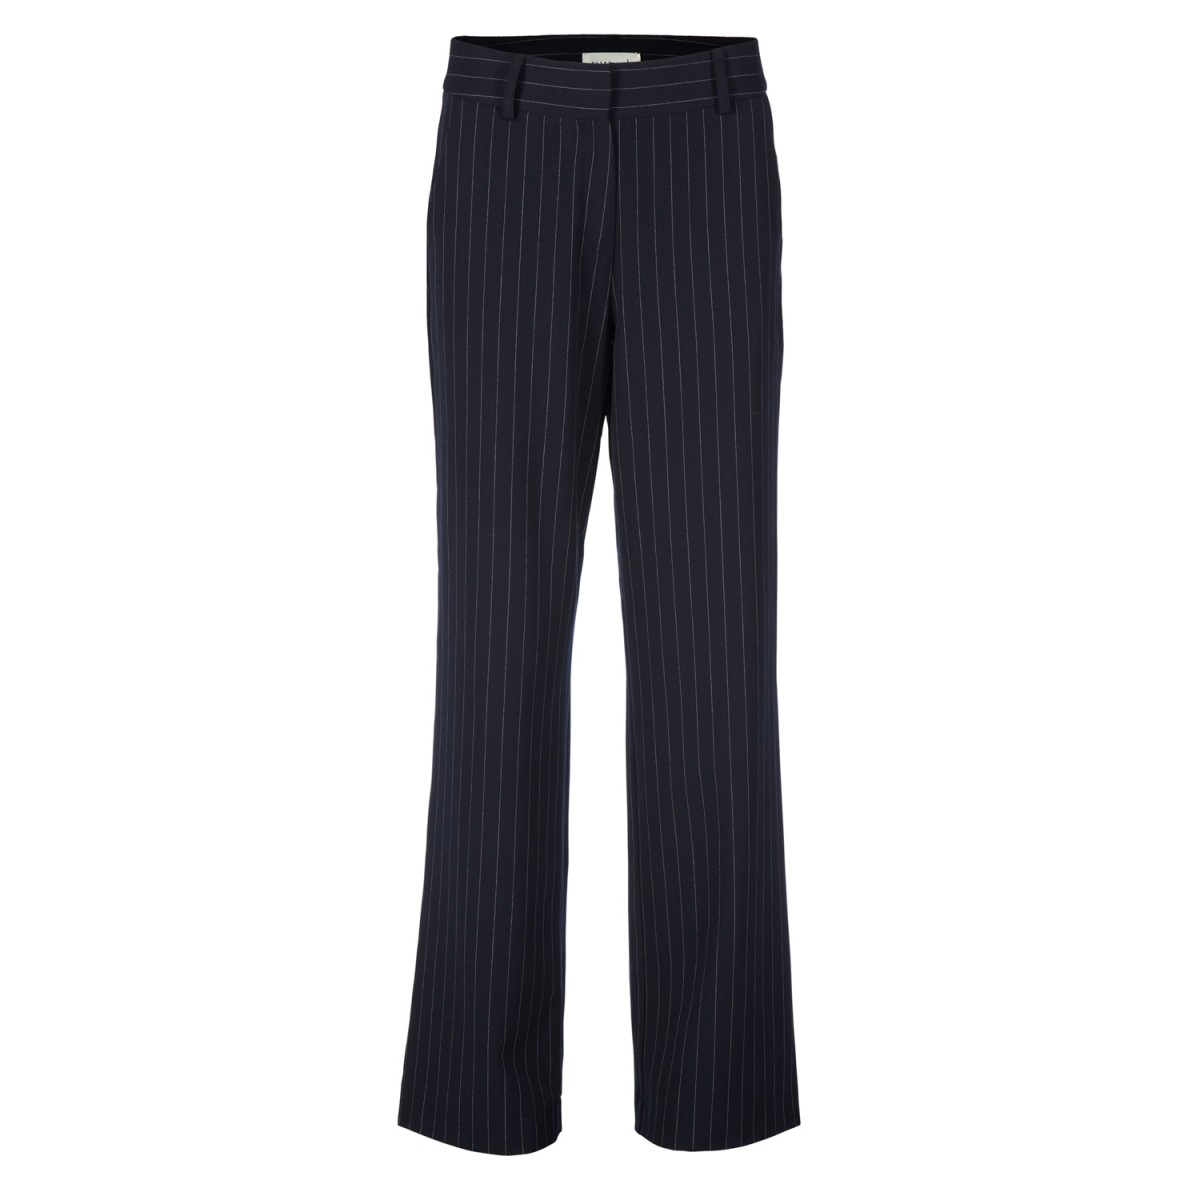 Rosemunde 4403-5093 Trousers Navy White Stripe-31